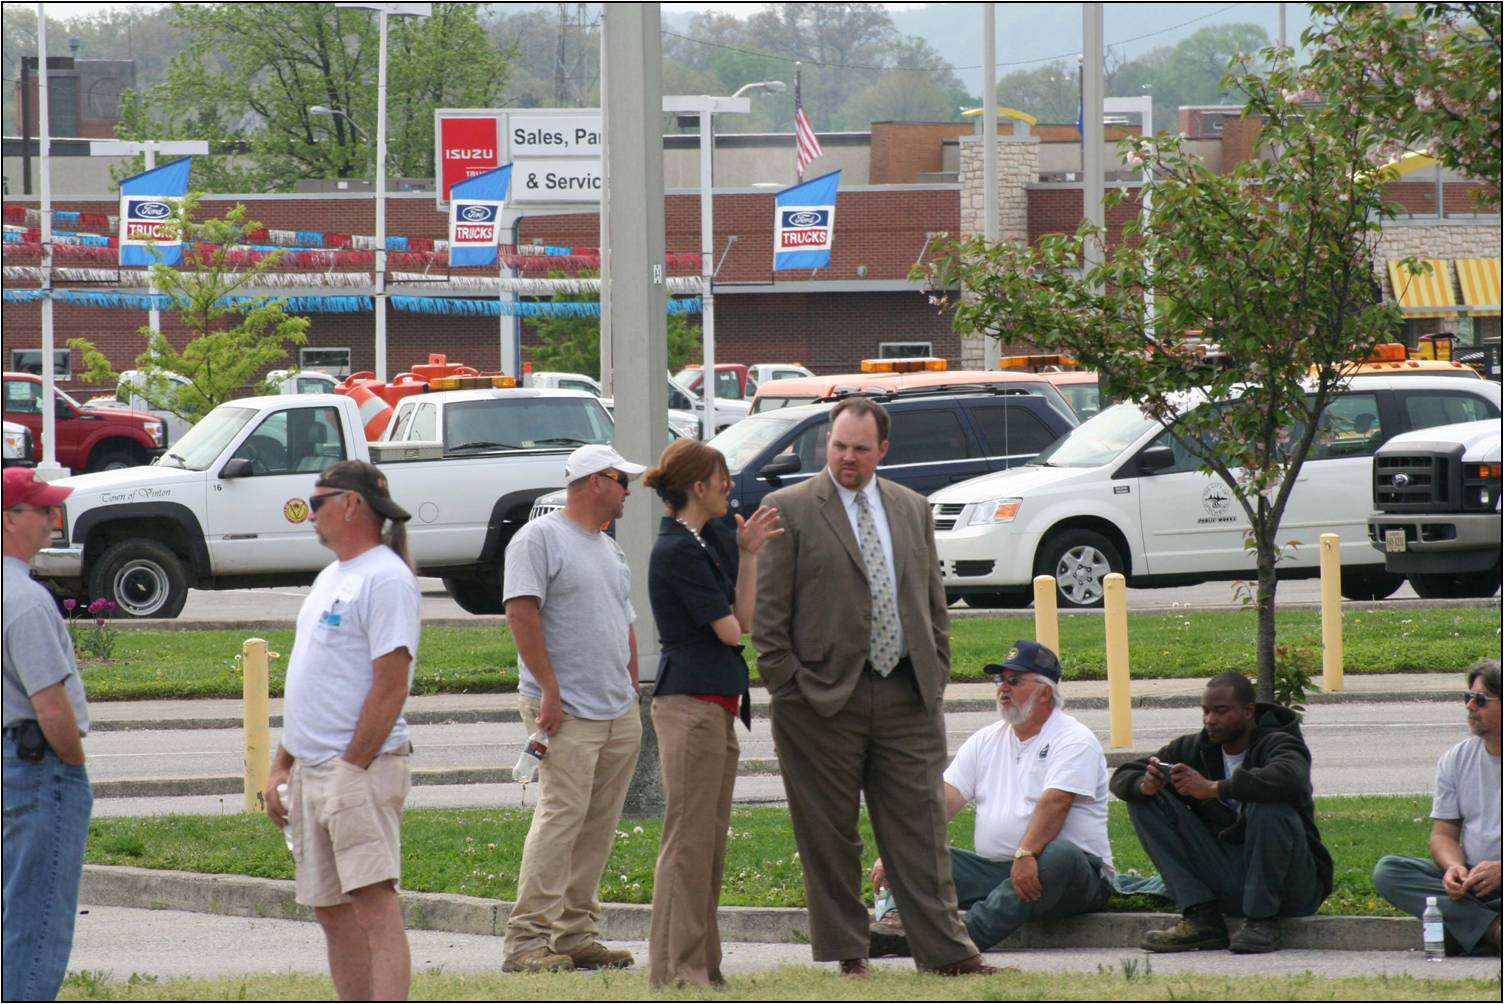 Town of Vinton Tow Manager - Chris Lawrence observing the events.